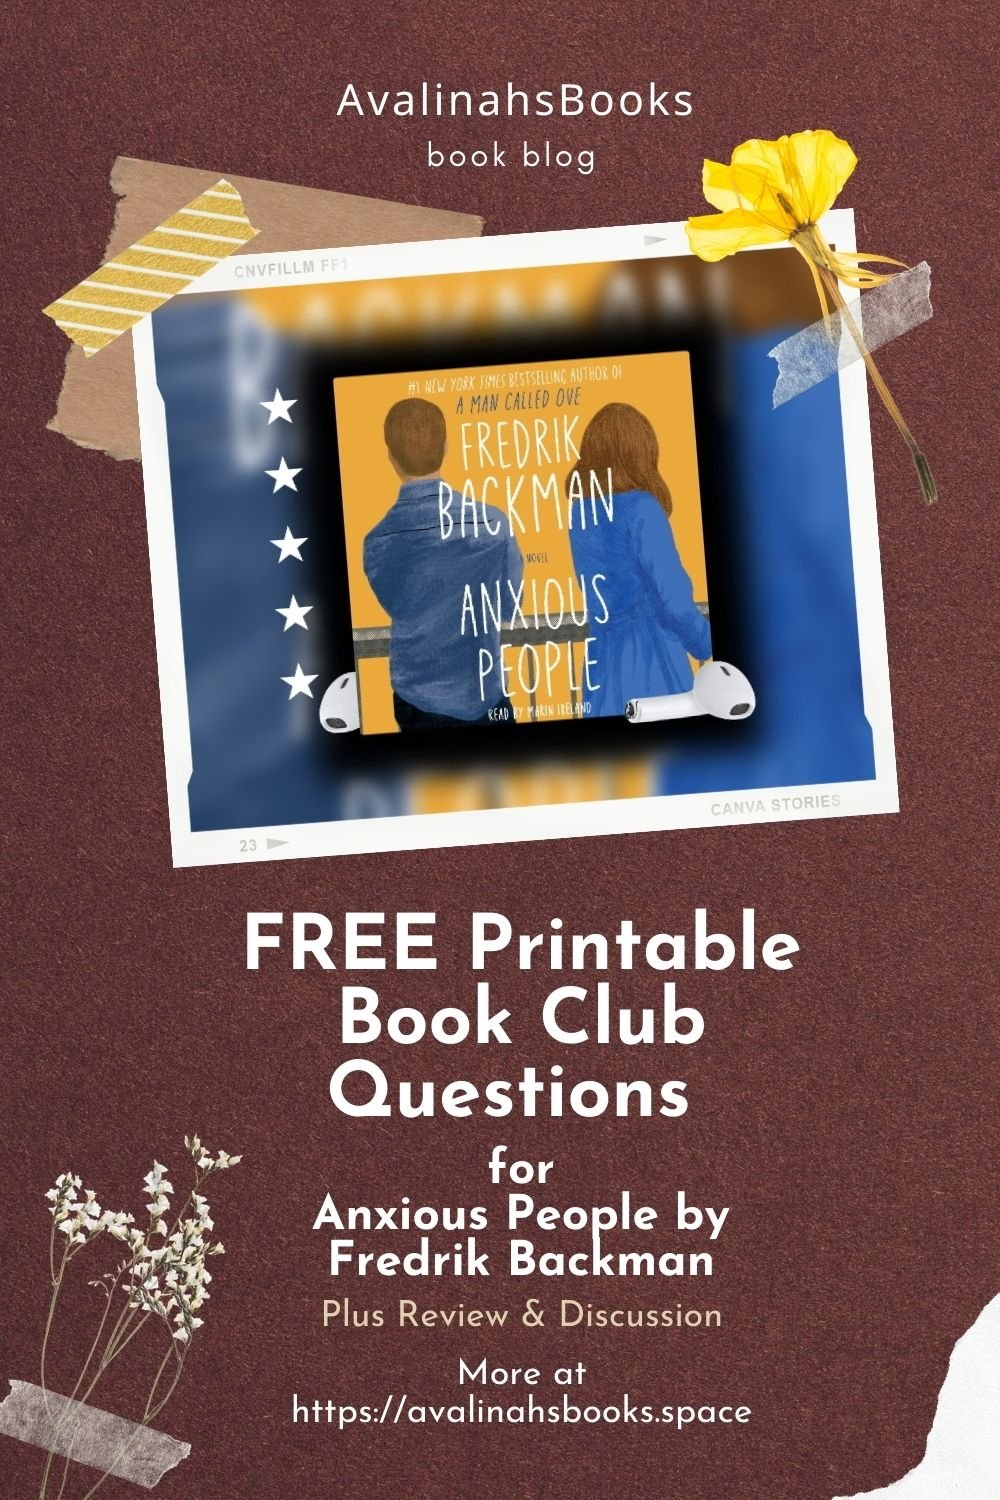 pin for book club questions for anxious people by fredrik backman